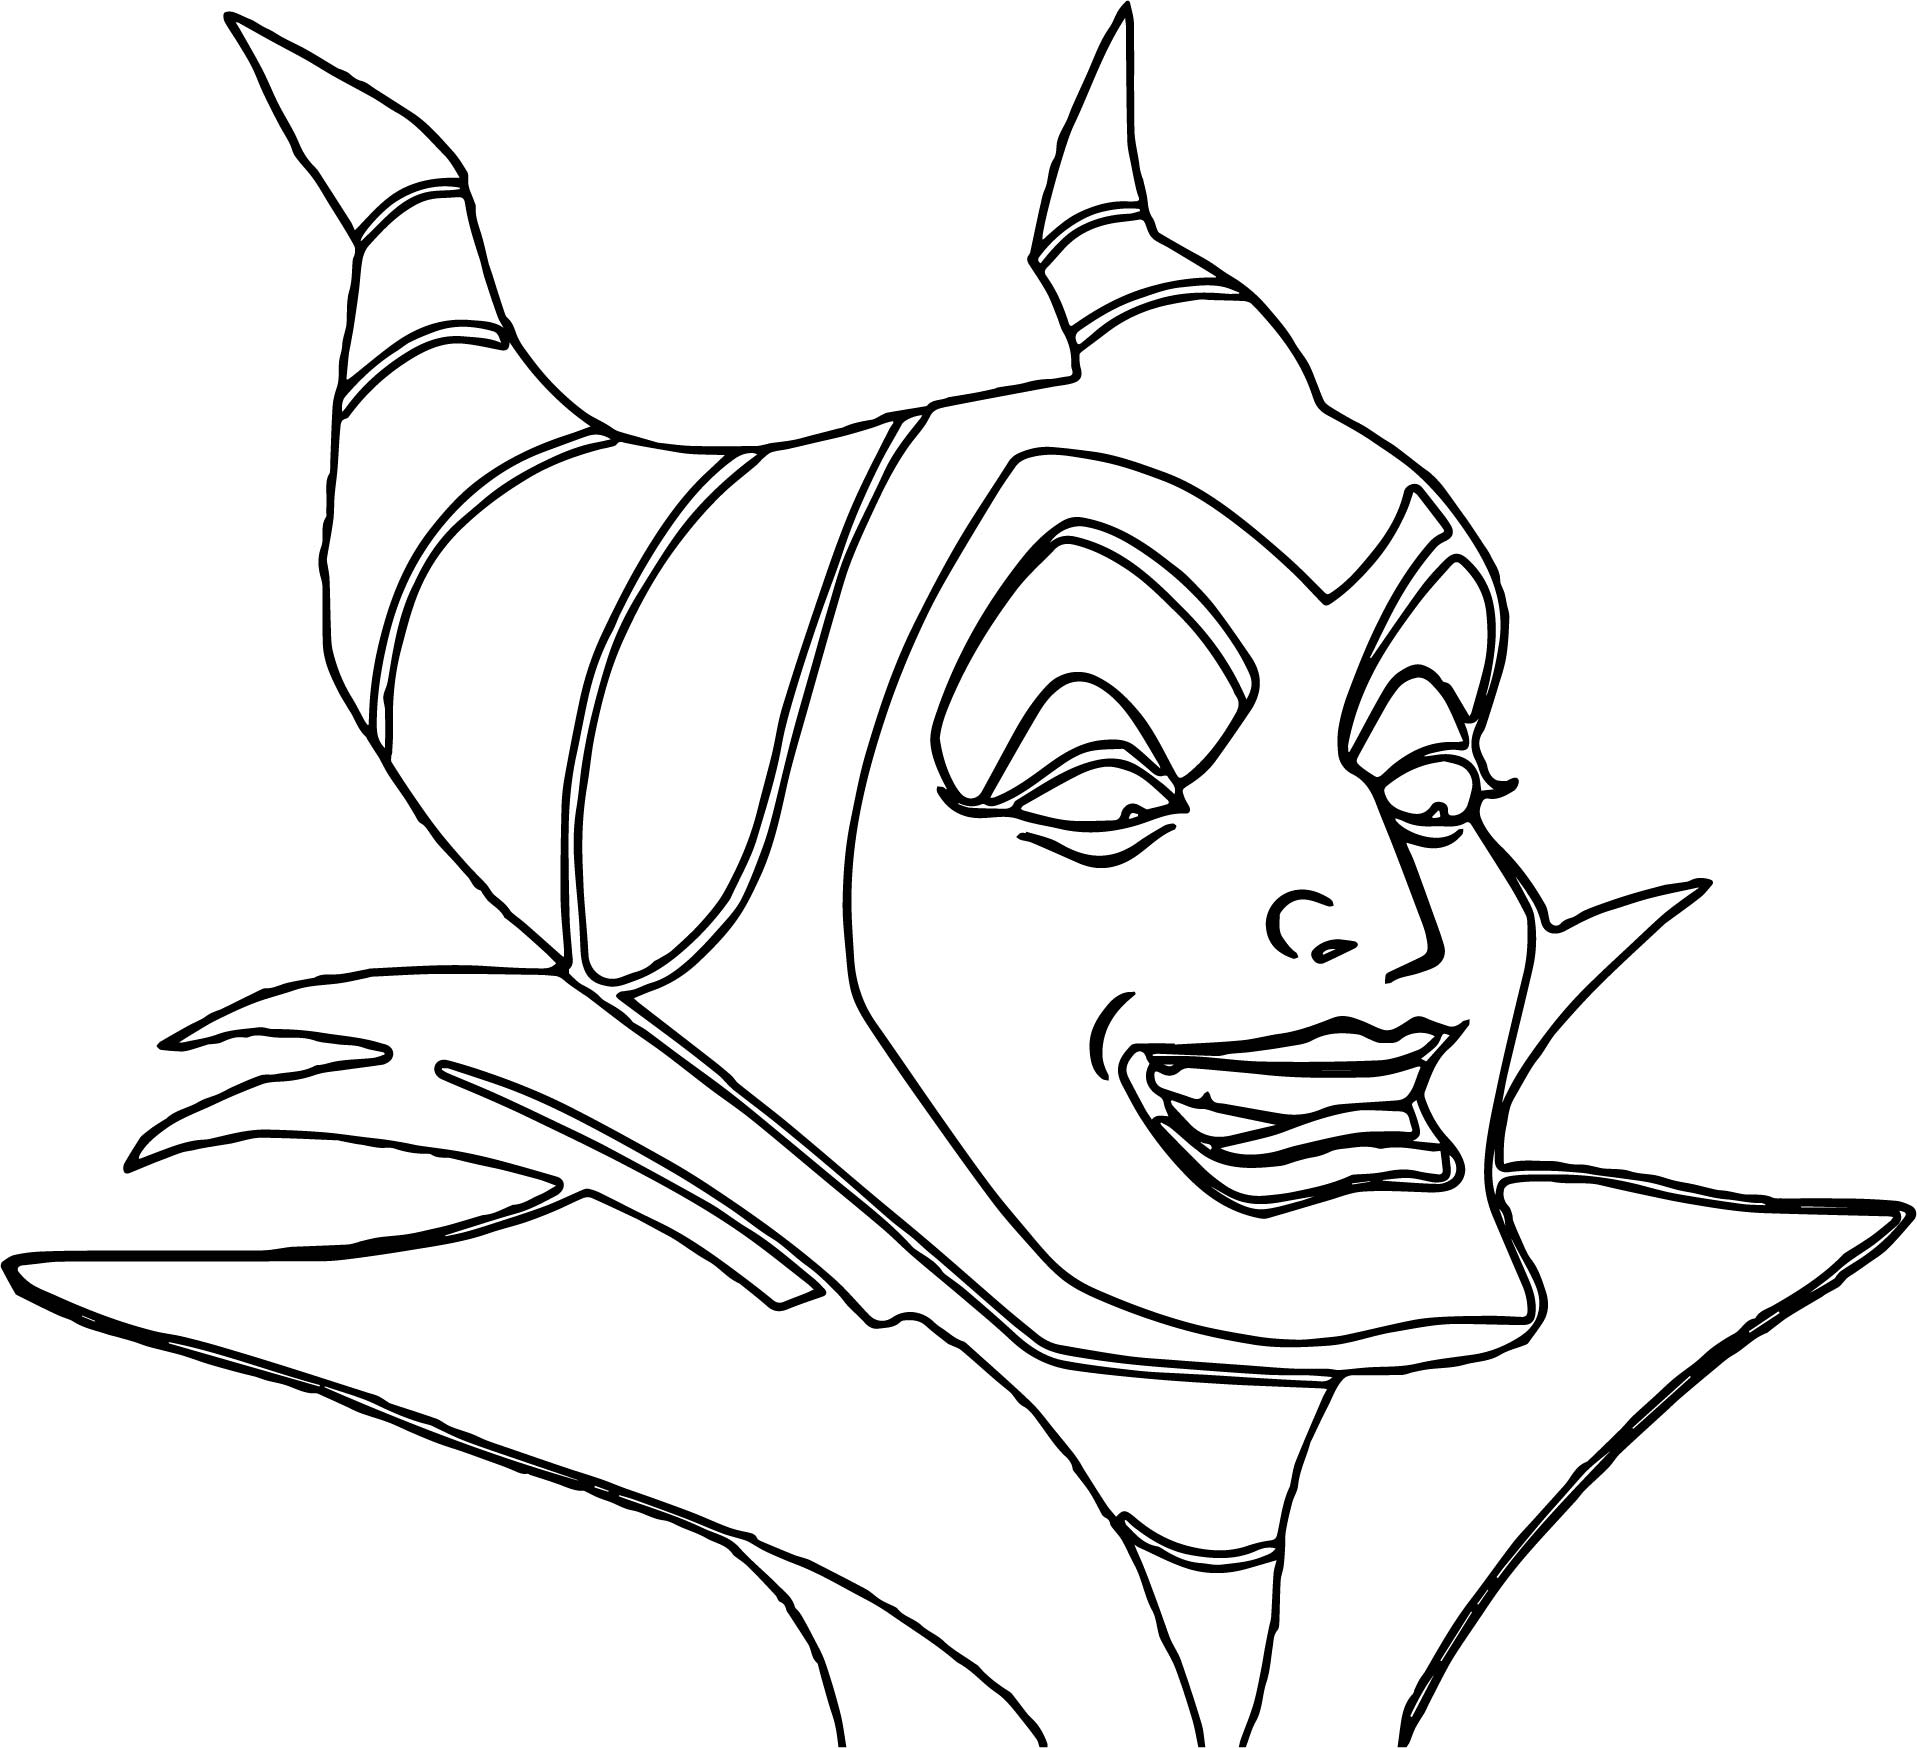 Maleficent face coloring pages for Maleficent coloring pages